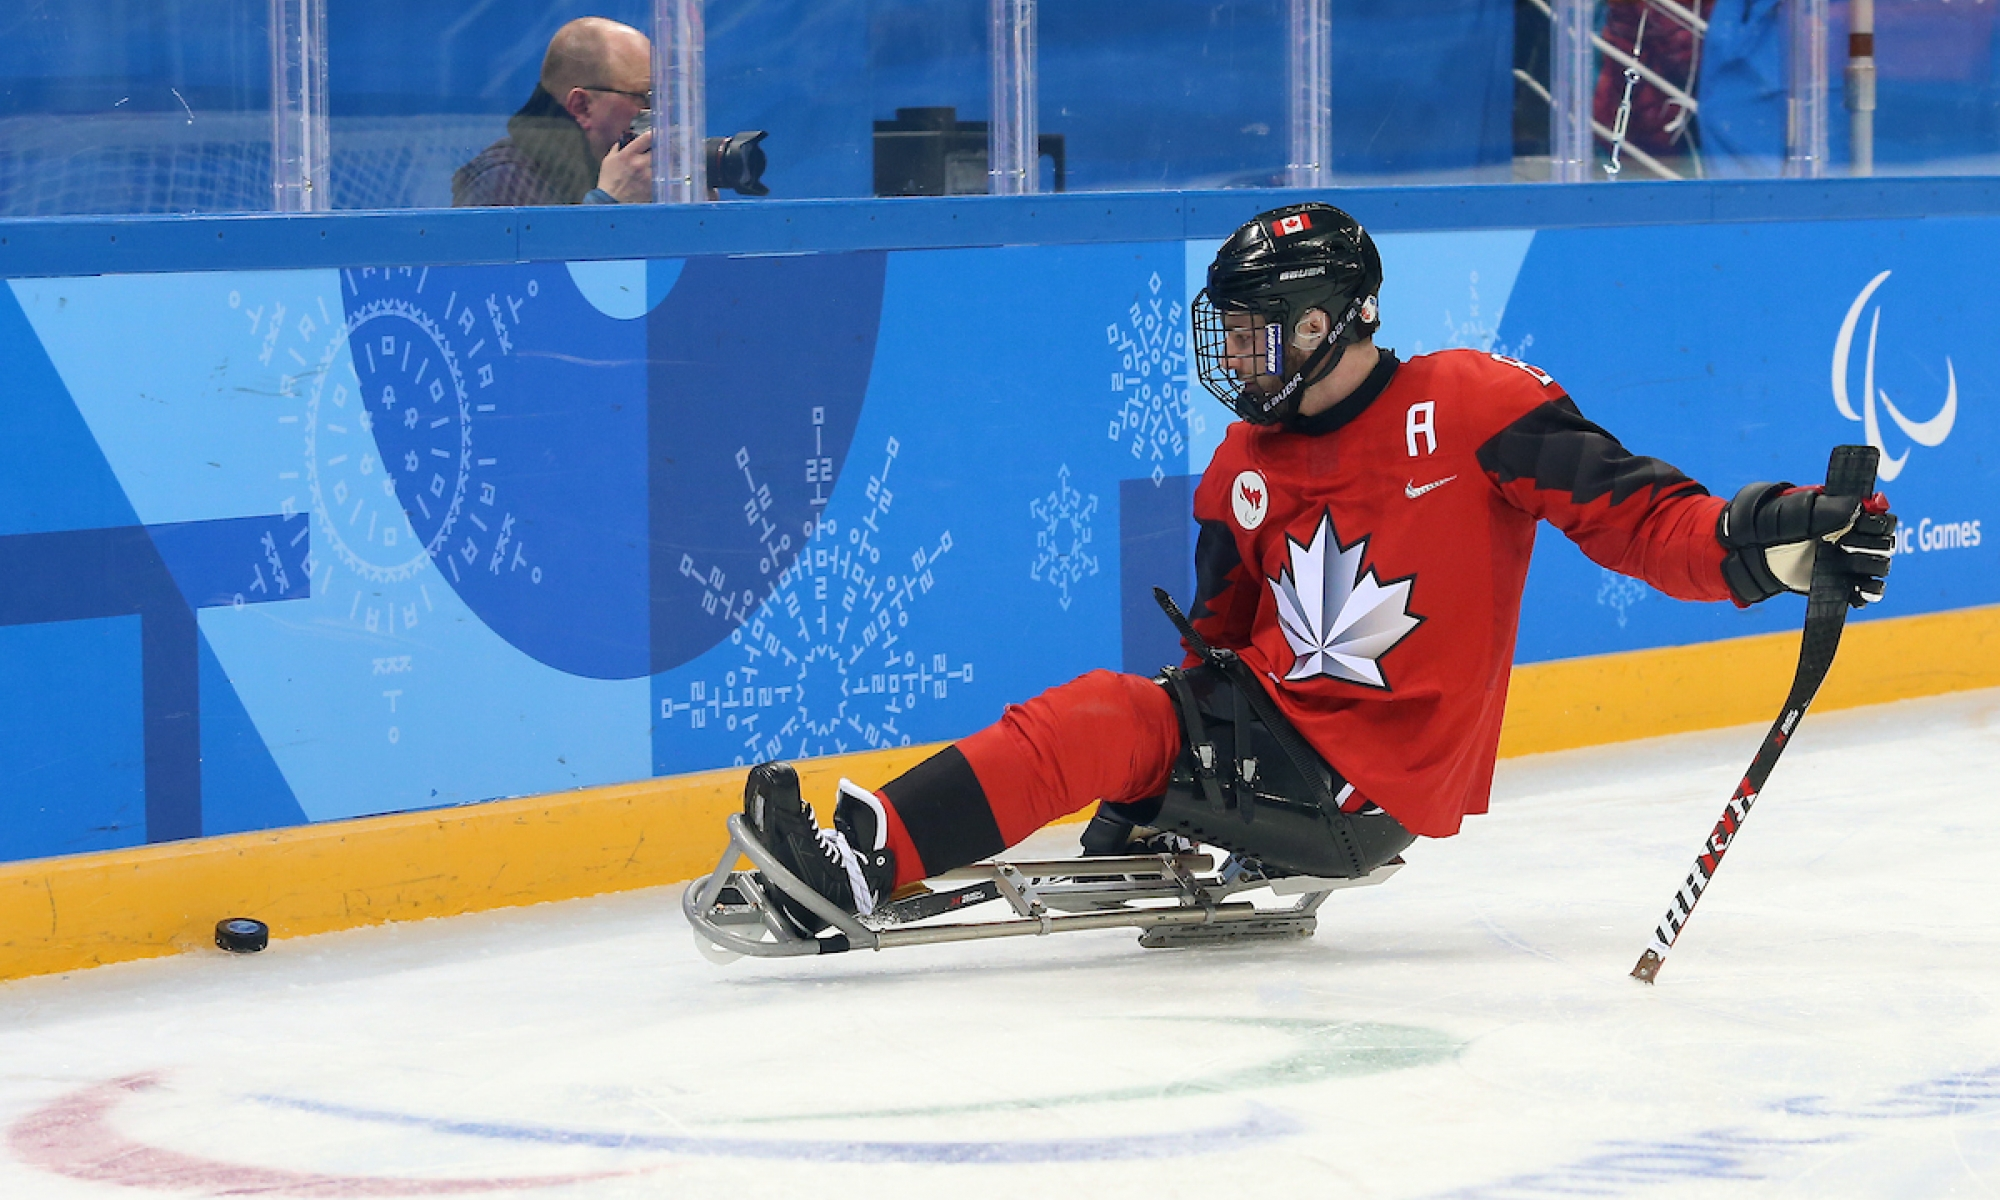 Tyler McGregor on the ice in his sledge